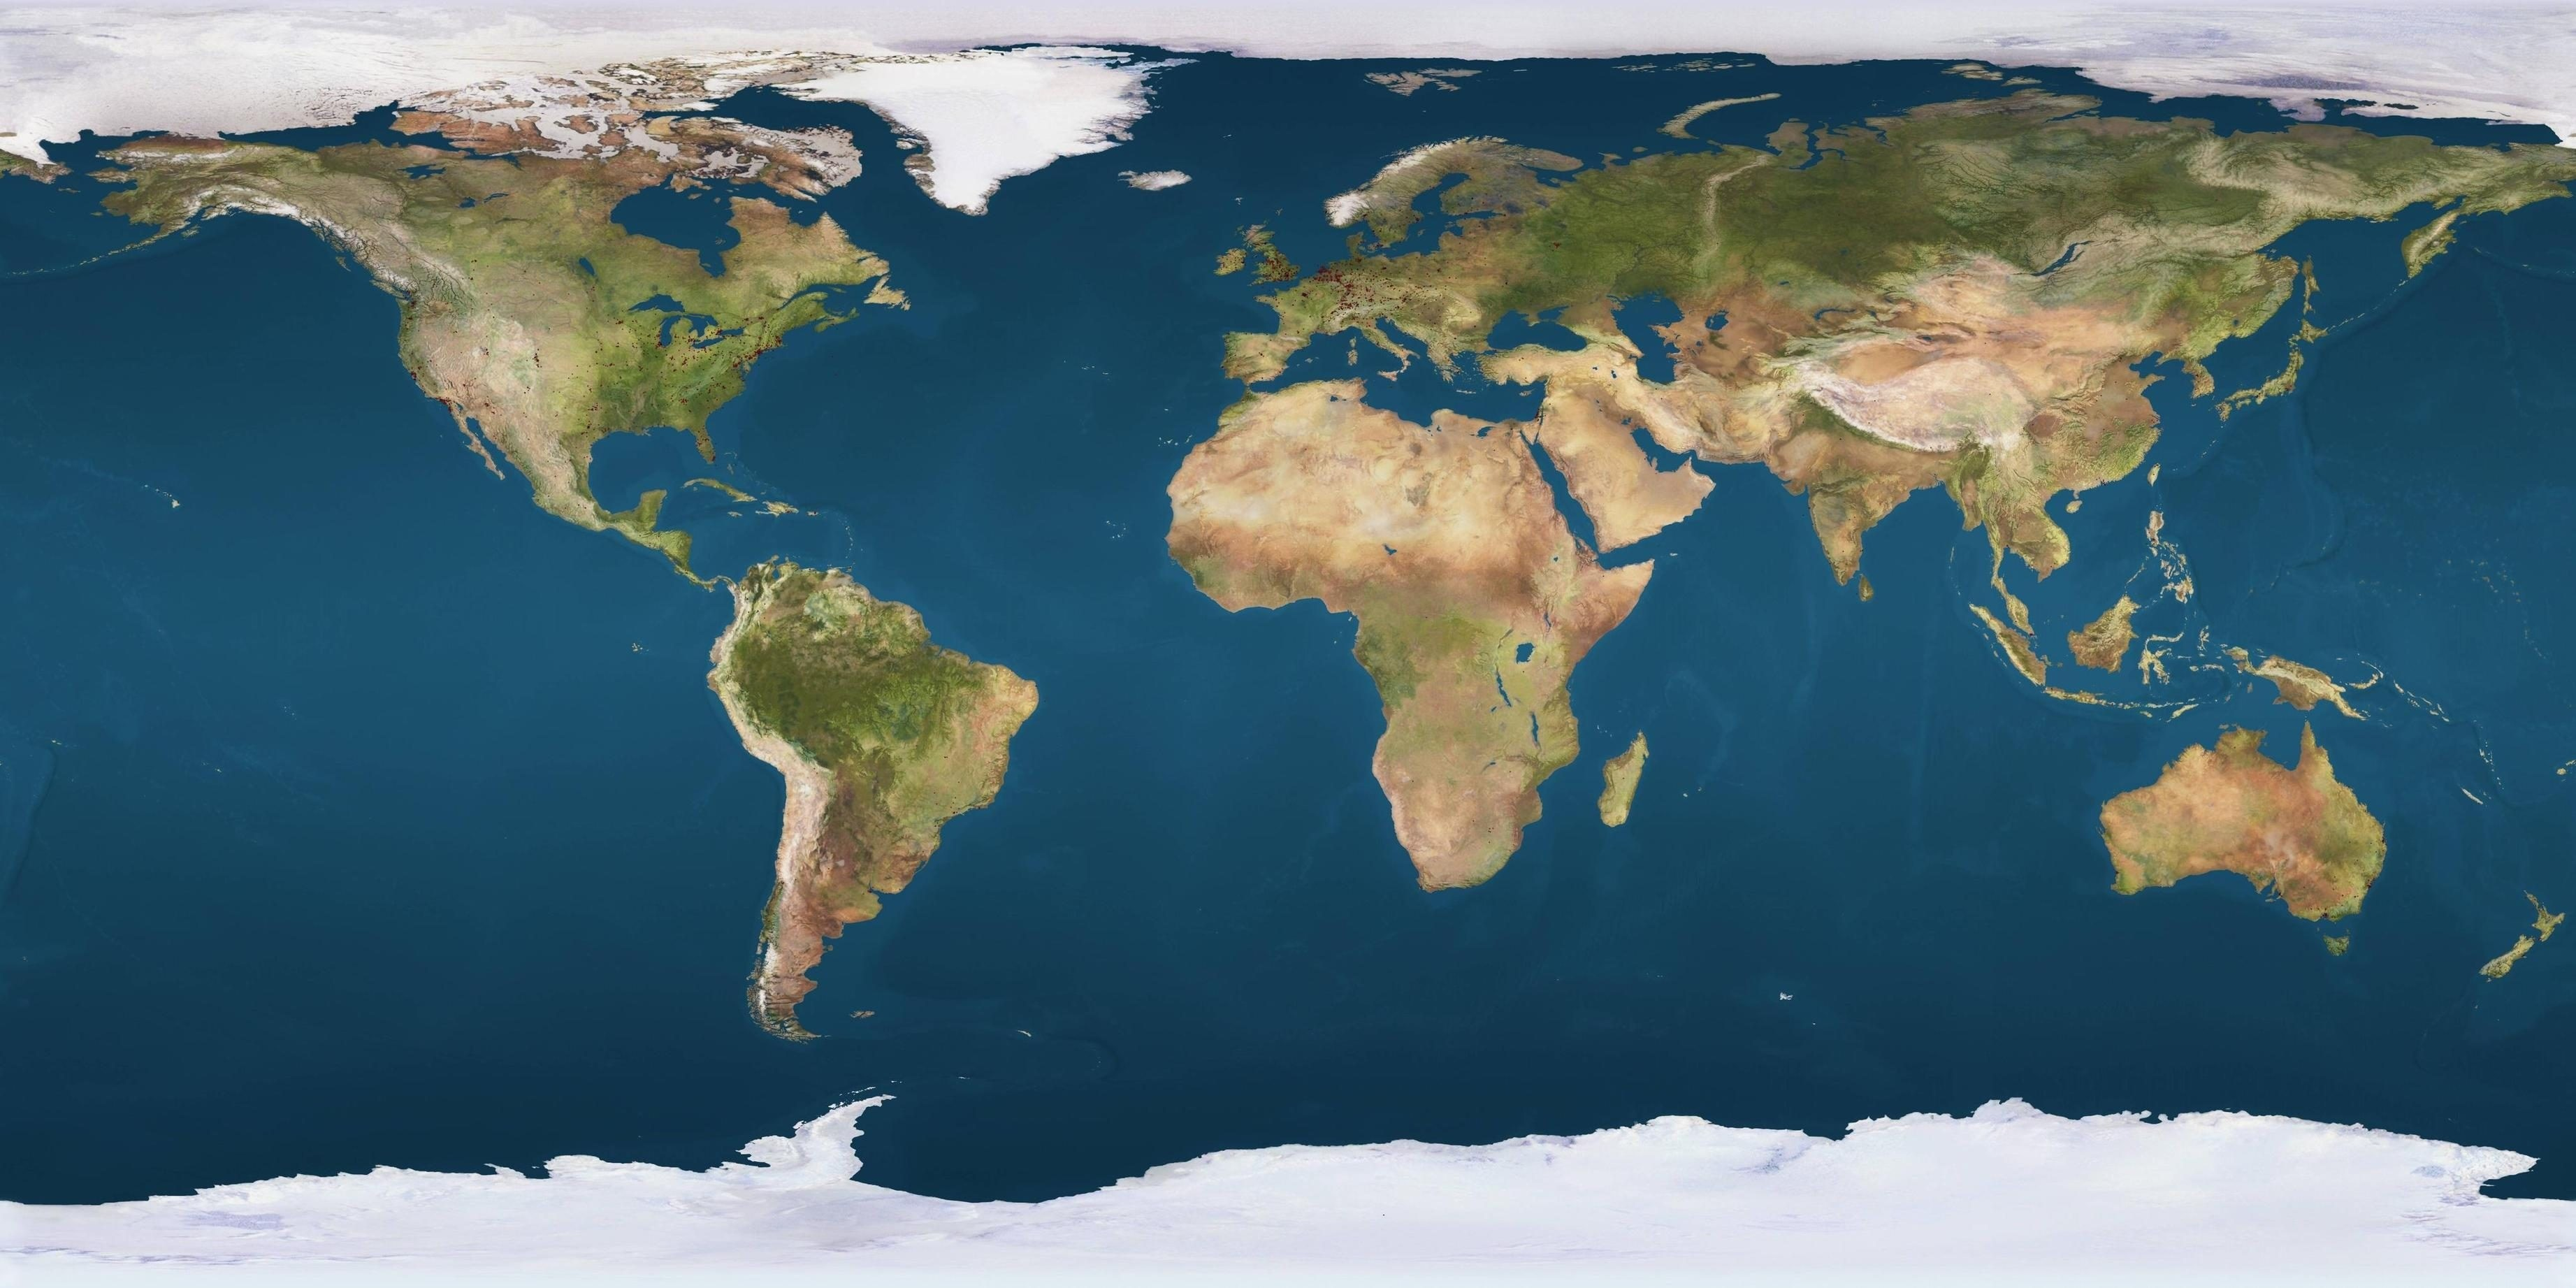 World map wallpaper high resolution world gumiabroncs Choice Image